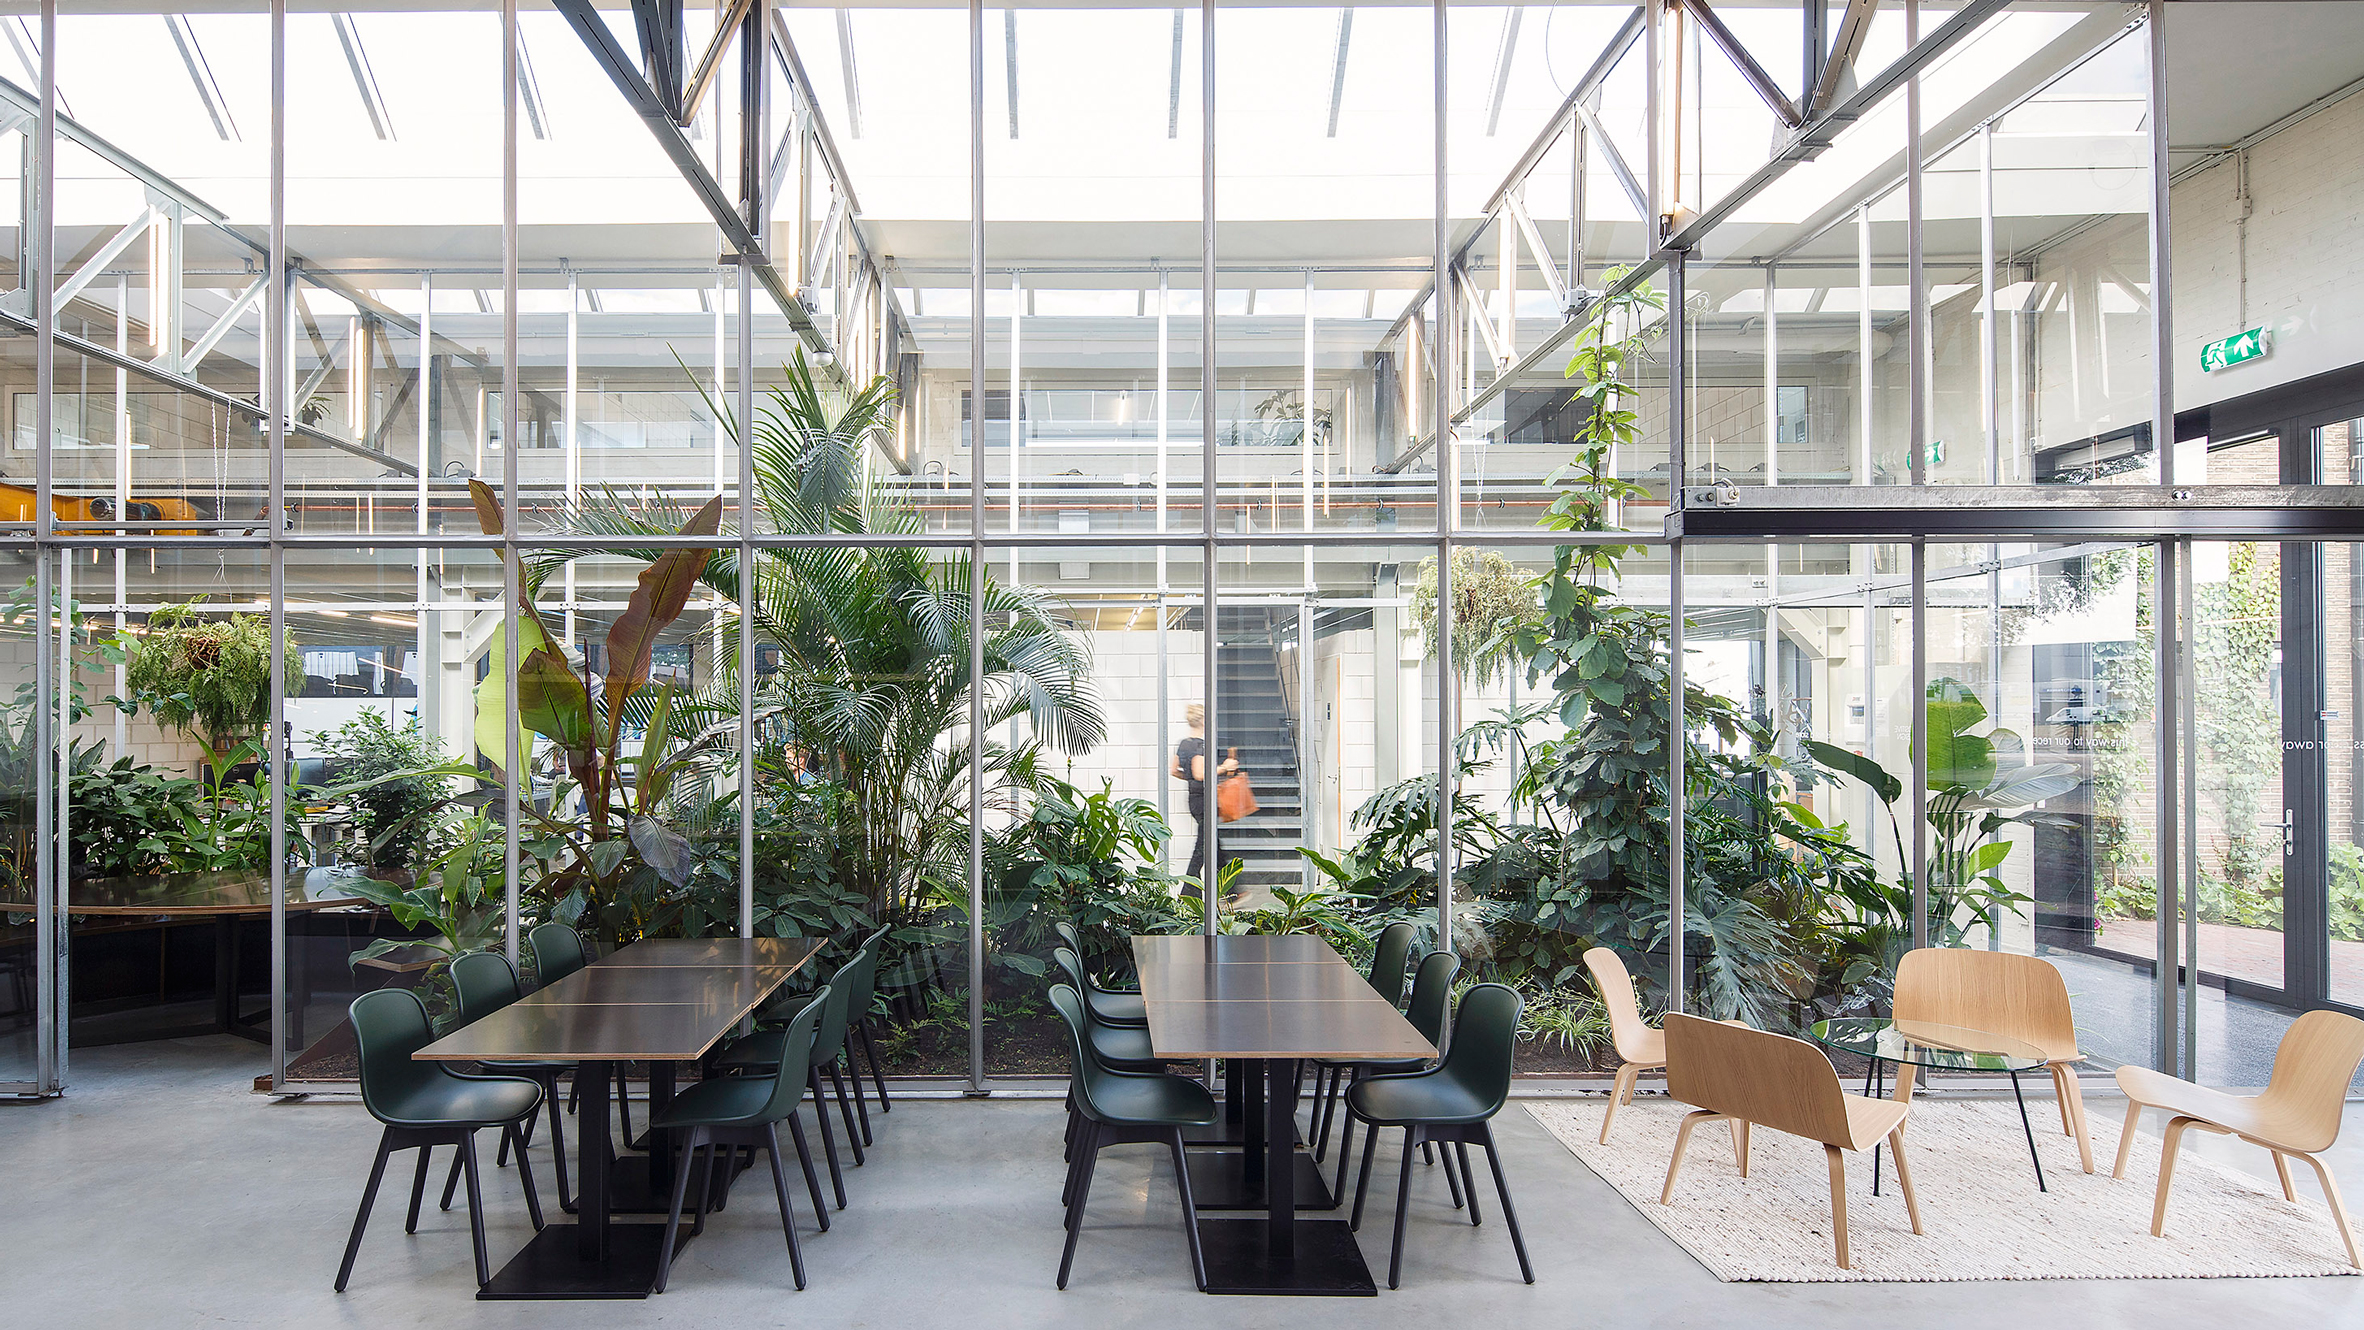 Space Encounters converts factory into greenhousefilled offices